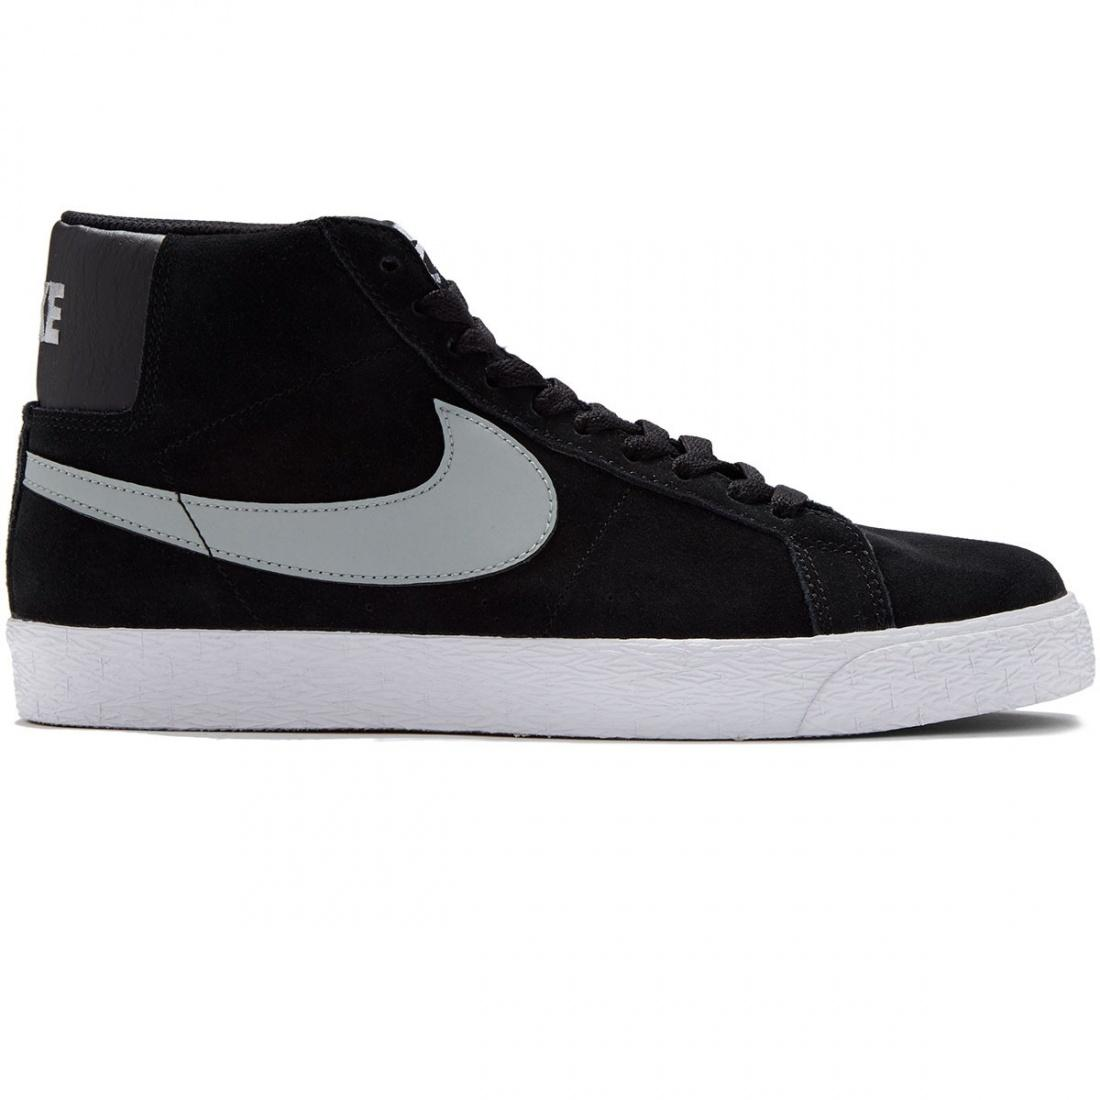 Nike SB Кеды Nike SB Blazer SB Premium Se black-base grey-white US 9.5 nike sb кеды nike sb portmore ii solar black black antracite 11